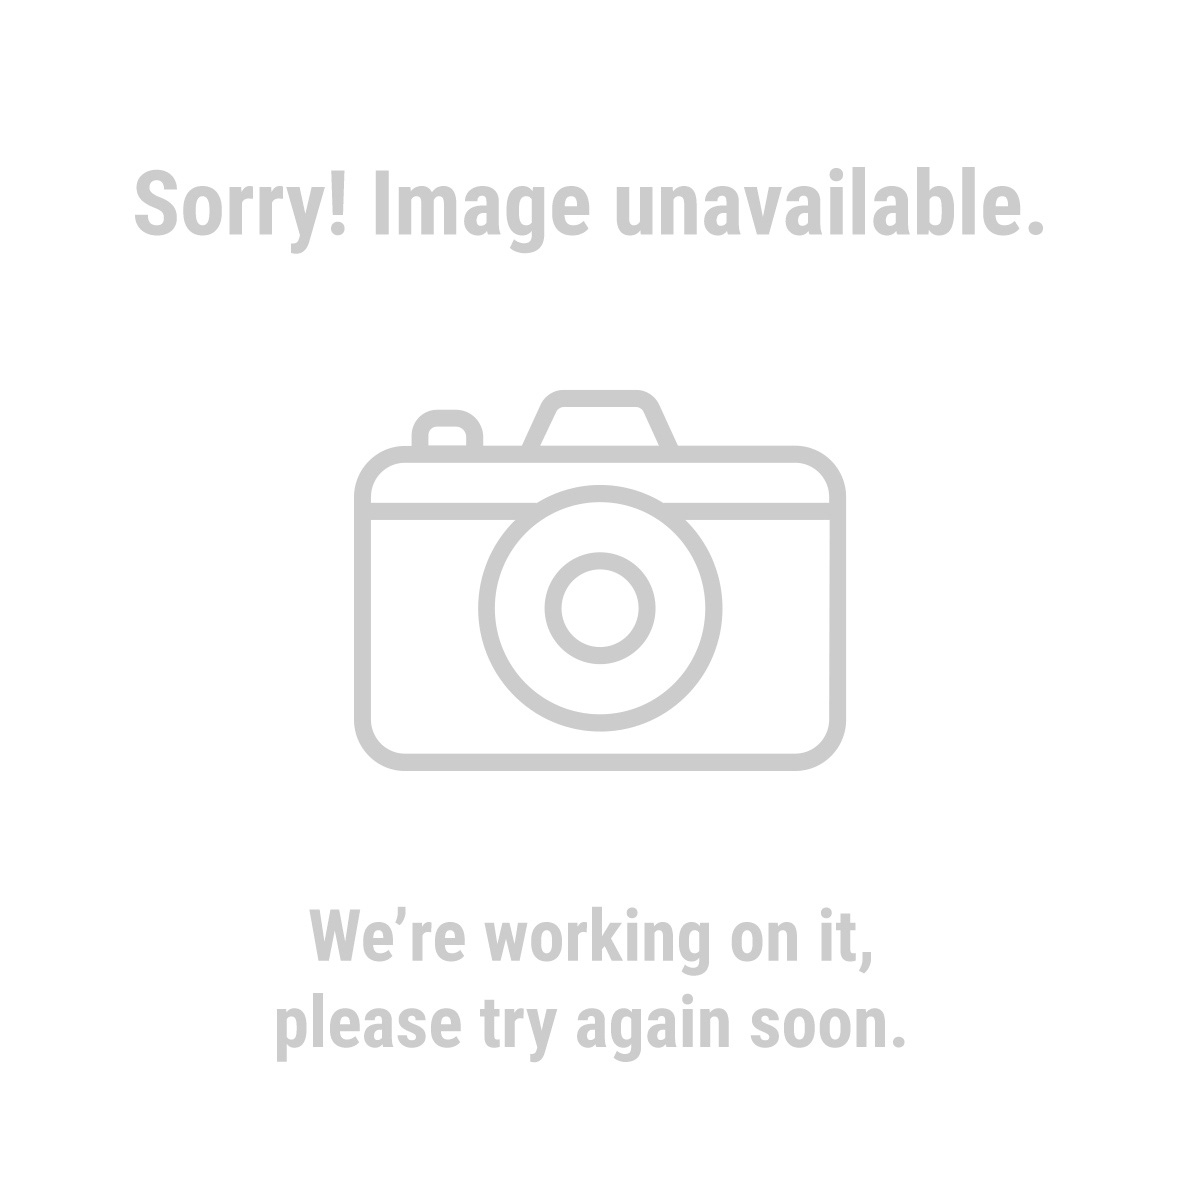 "Harbor Freight Tools 69129 7 ft. 4"" x 9 ft. 6"" All Purpose Weather Resistant Tarp"